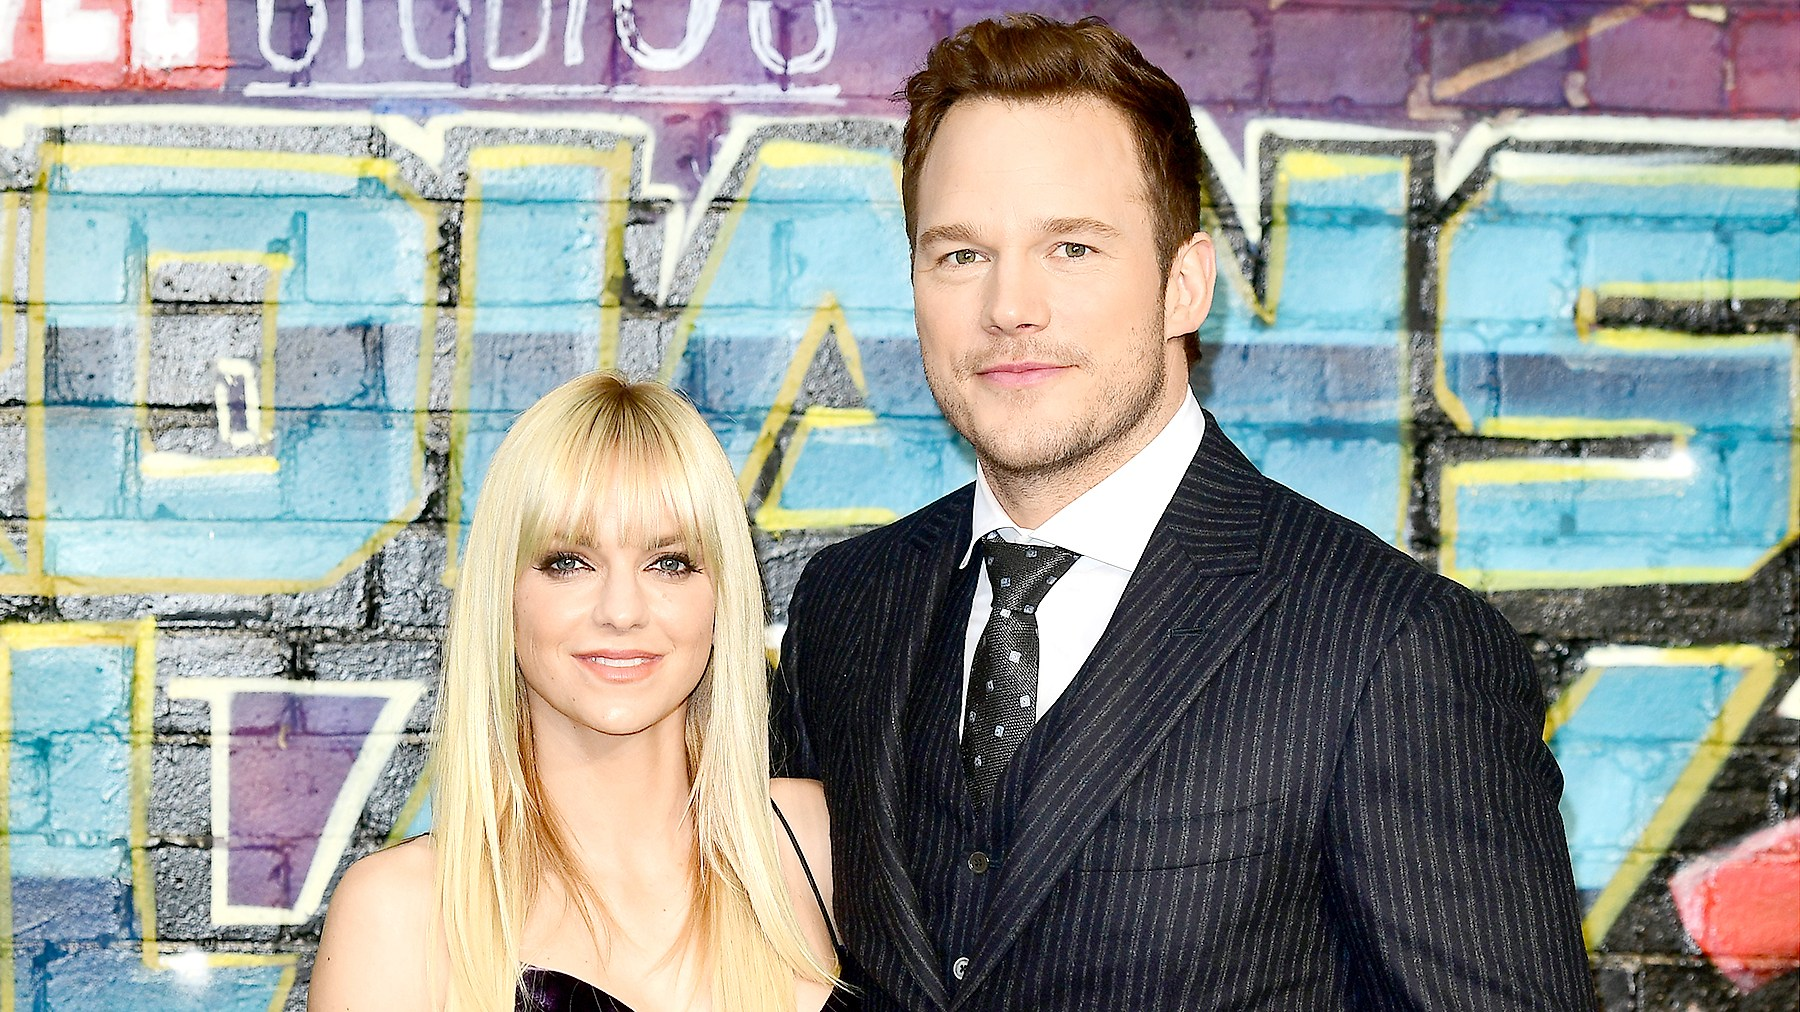 Chris Pratt and Anna Faris attend the European Premiere of Guardians of the Galaxy Vol. 2 held at the Eventim Apollo, London, April 24, 2017.